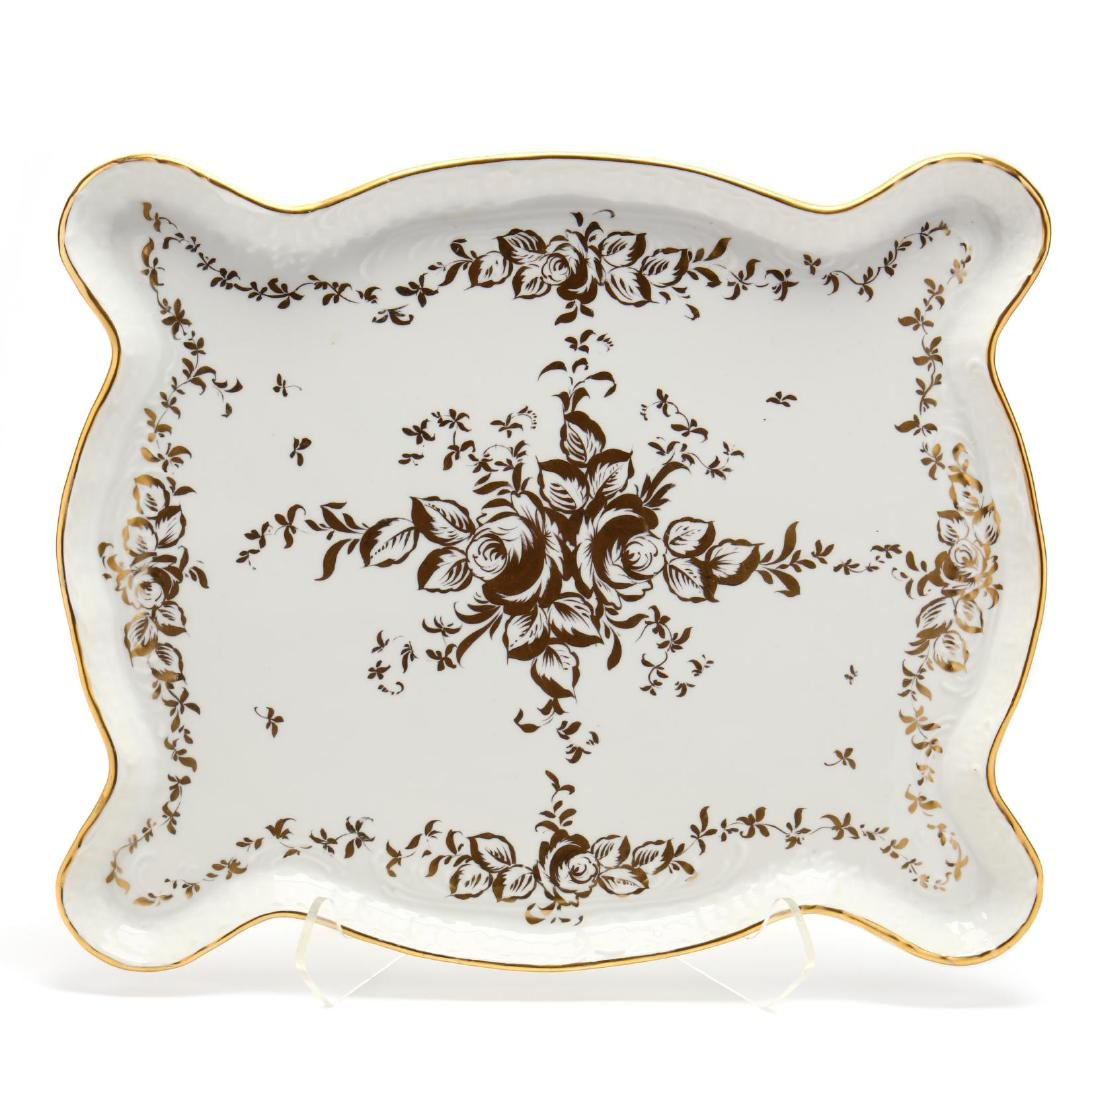 A Large Hand-Painted Vintage Limoges Tray - 2